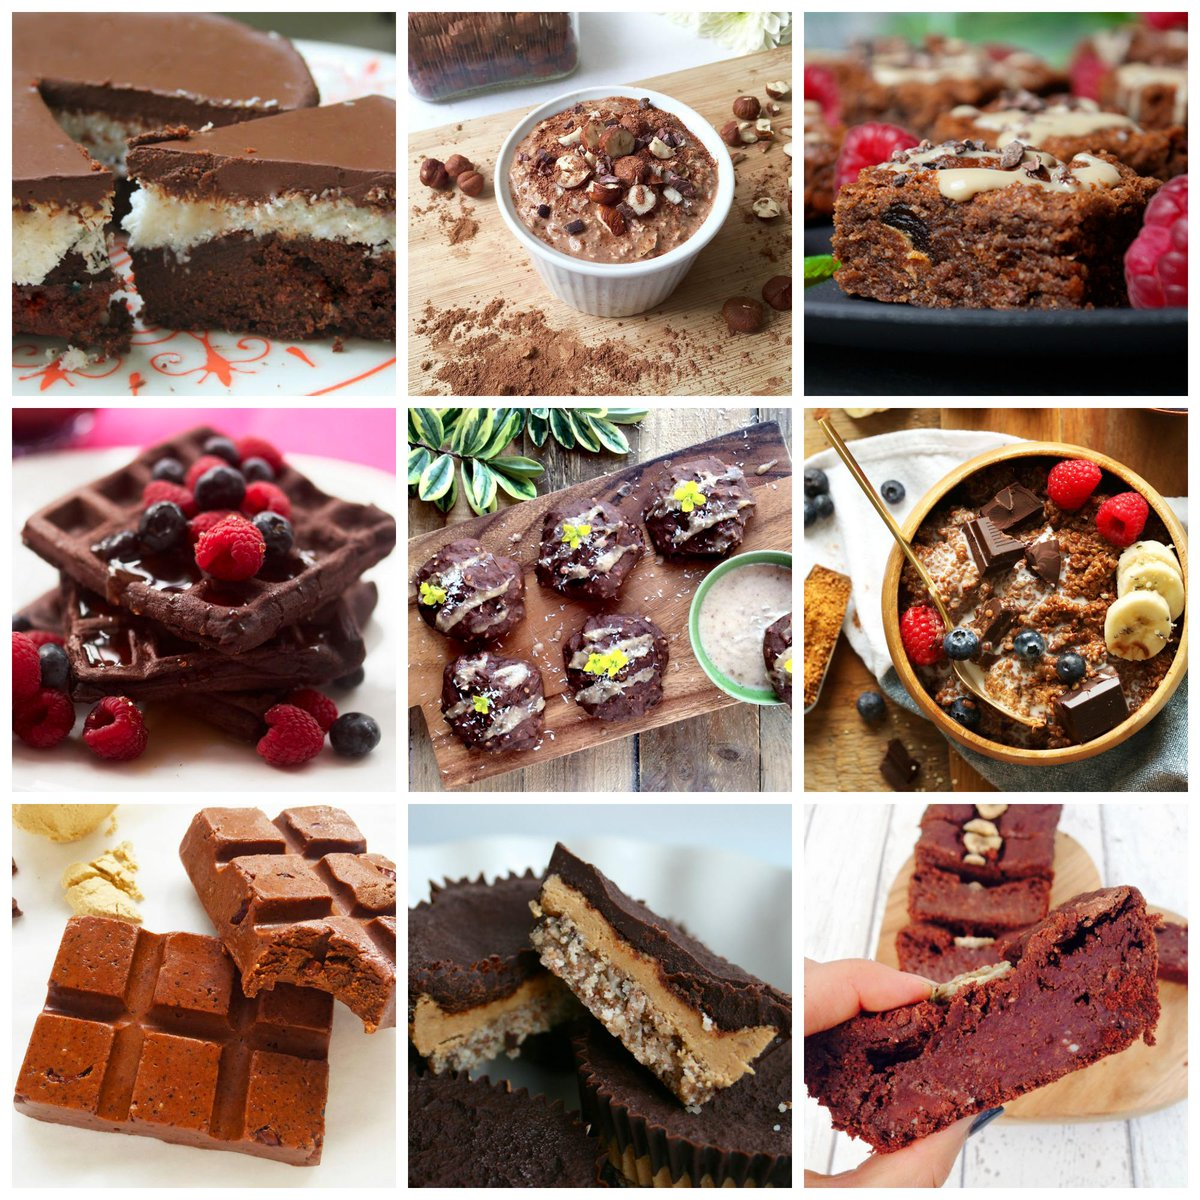 To celebrate #ChocolateWeek: My Top 10 #Healthy Chocolate Recipes (prepare to drool): http://t.co/yMleISbEeF http://t.co/eov5PemBro